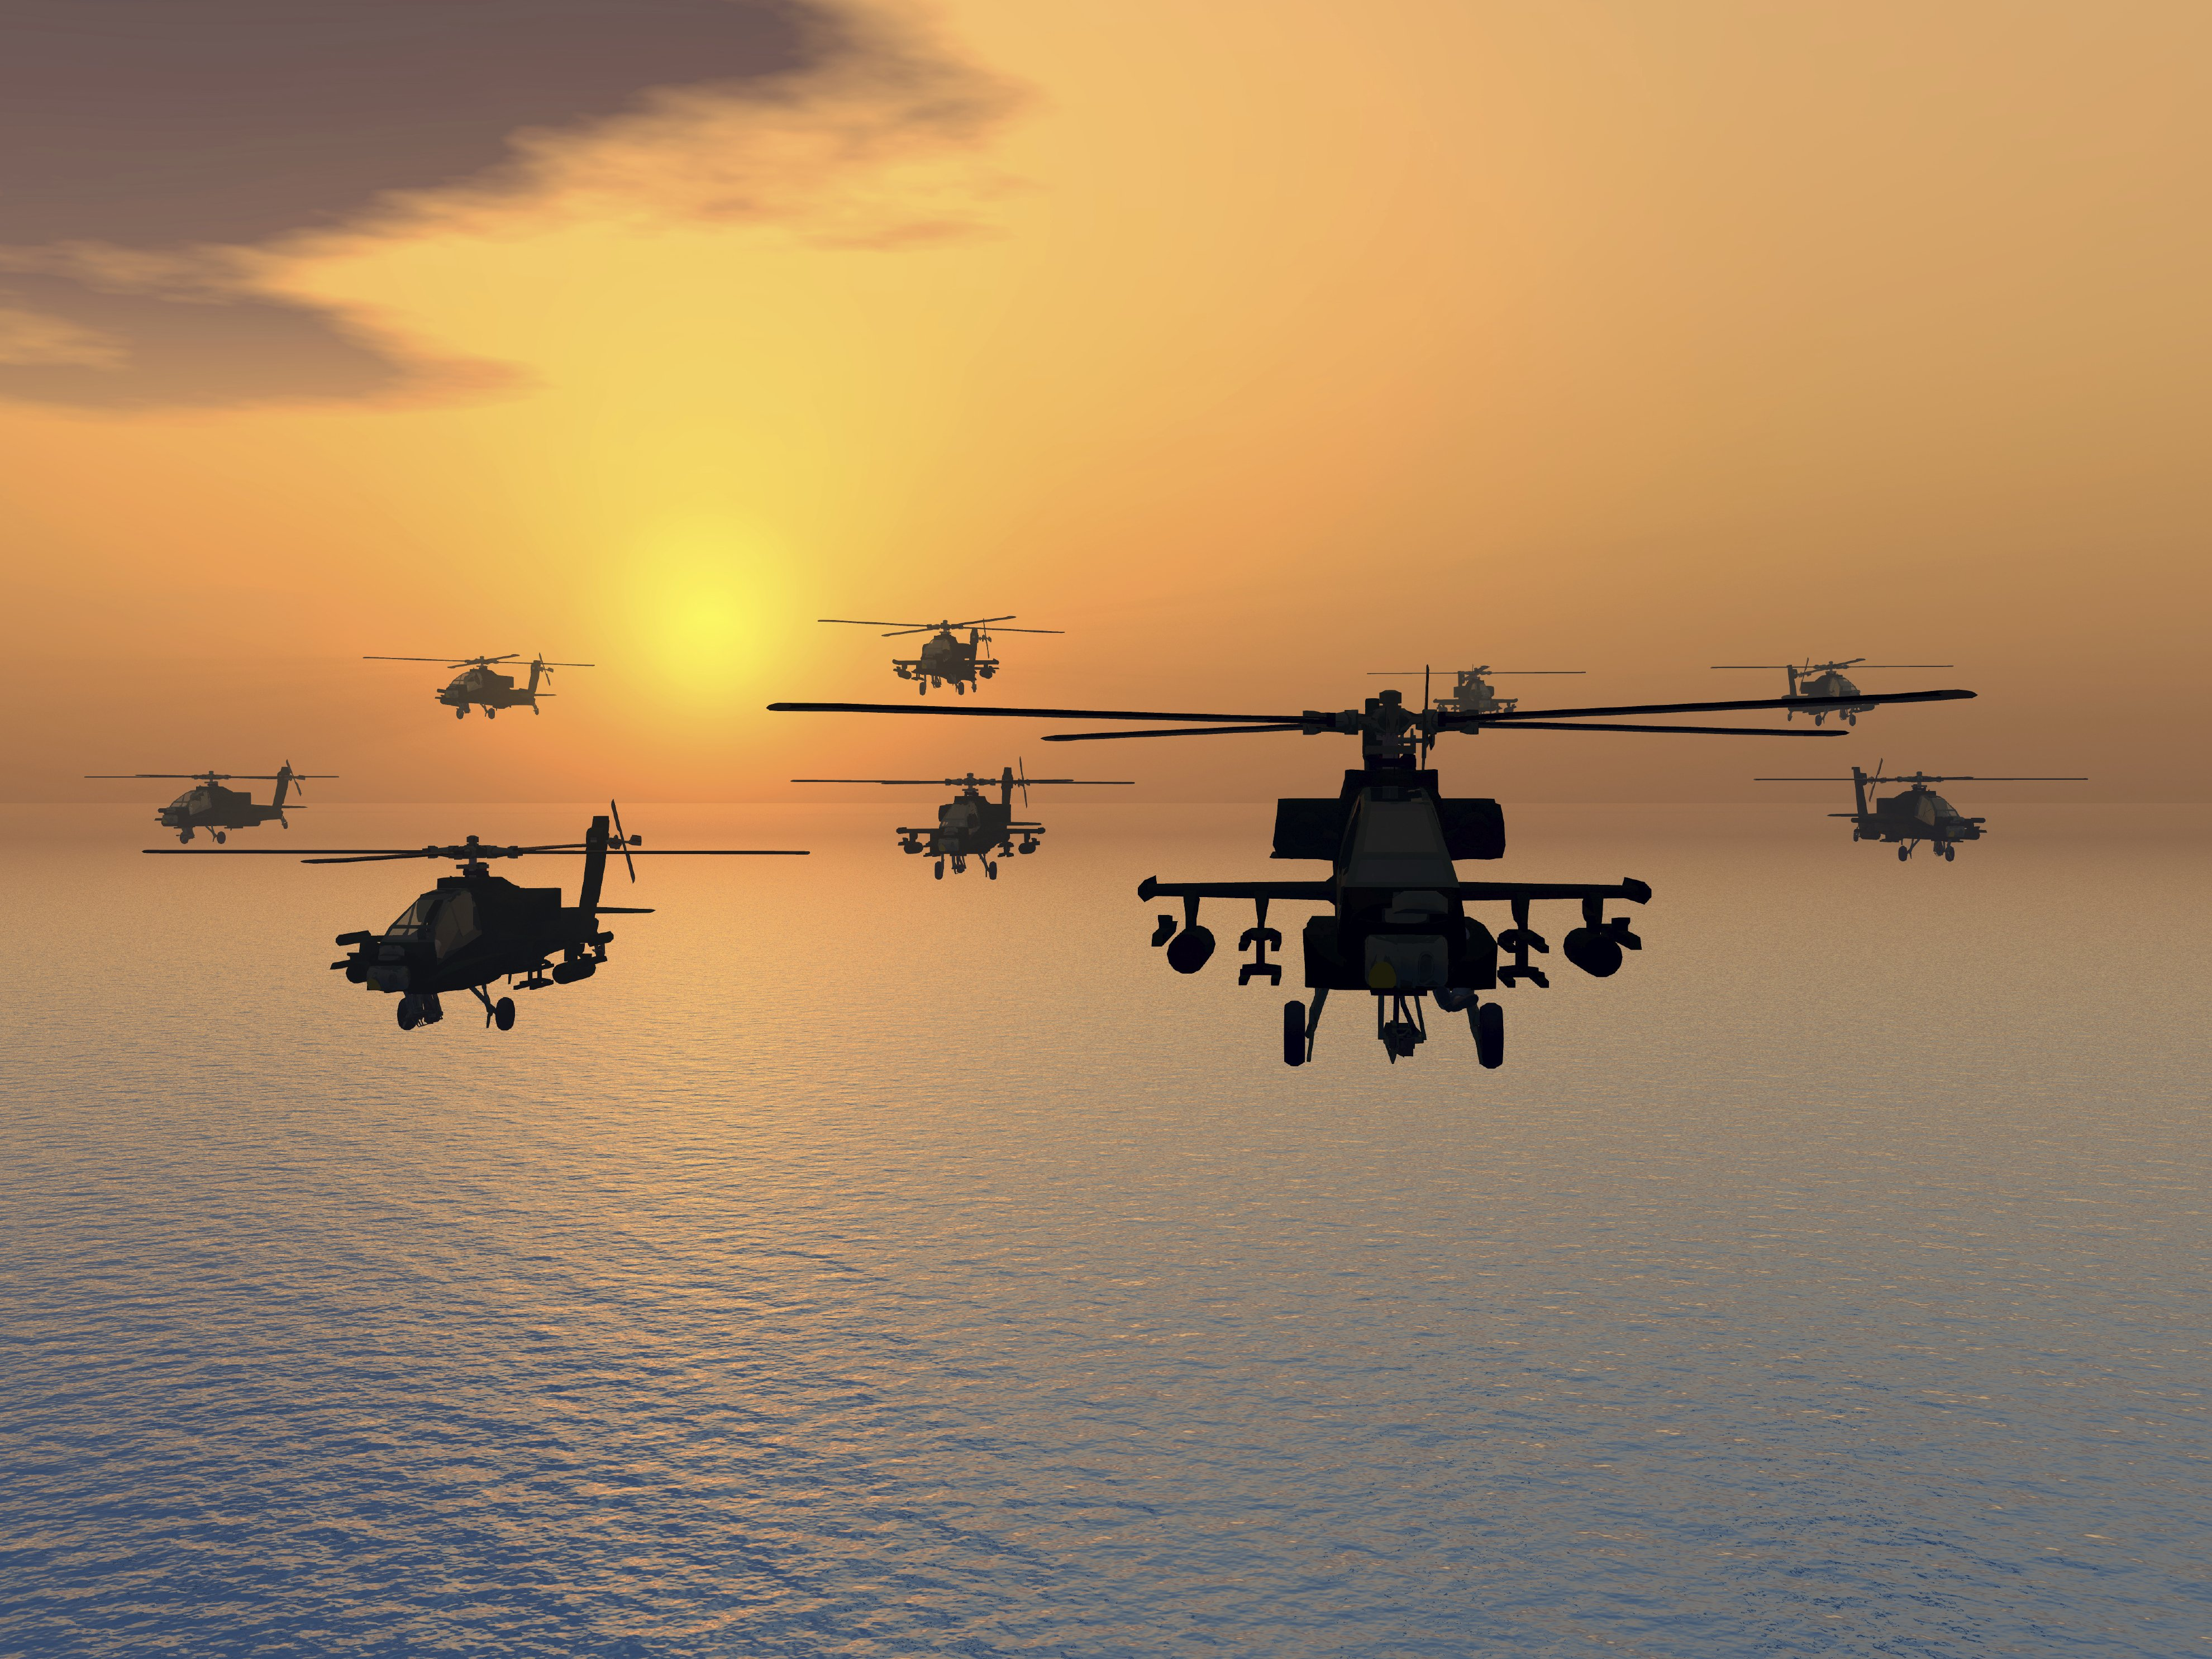 Photo of a helicopter fleet over the ocean at sunset